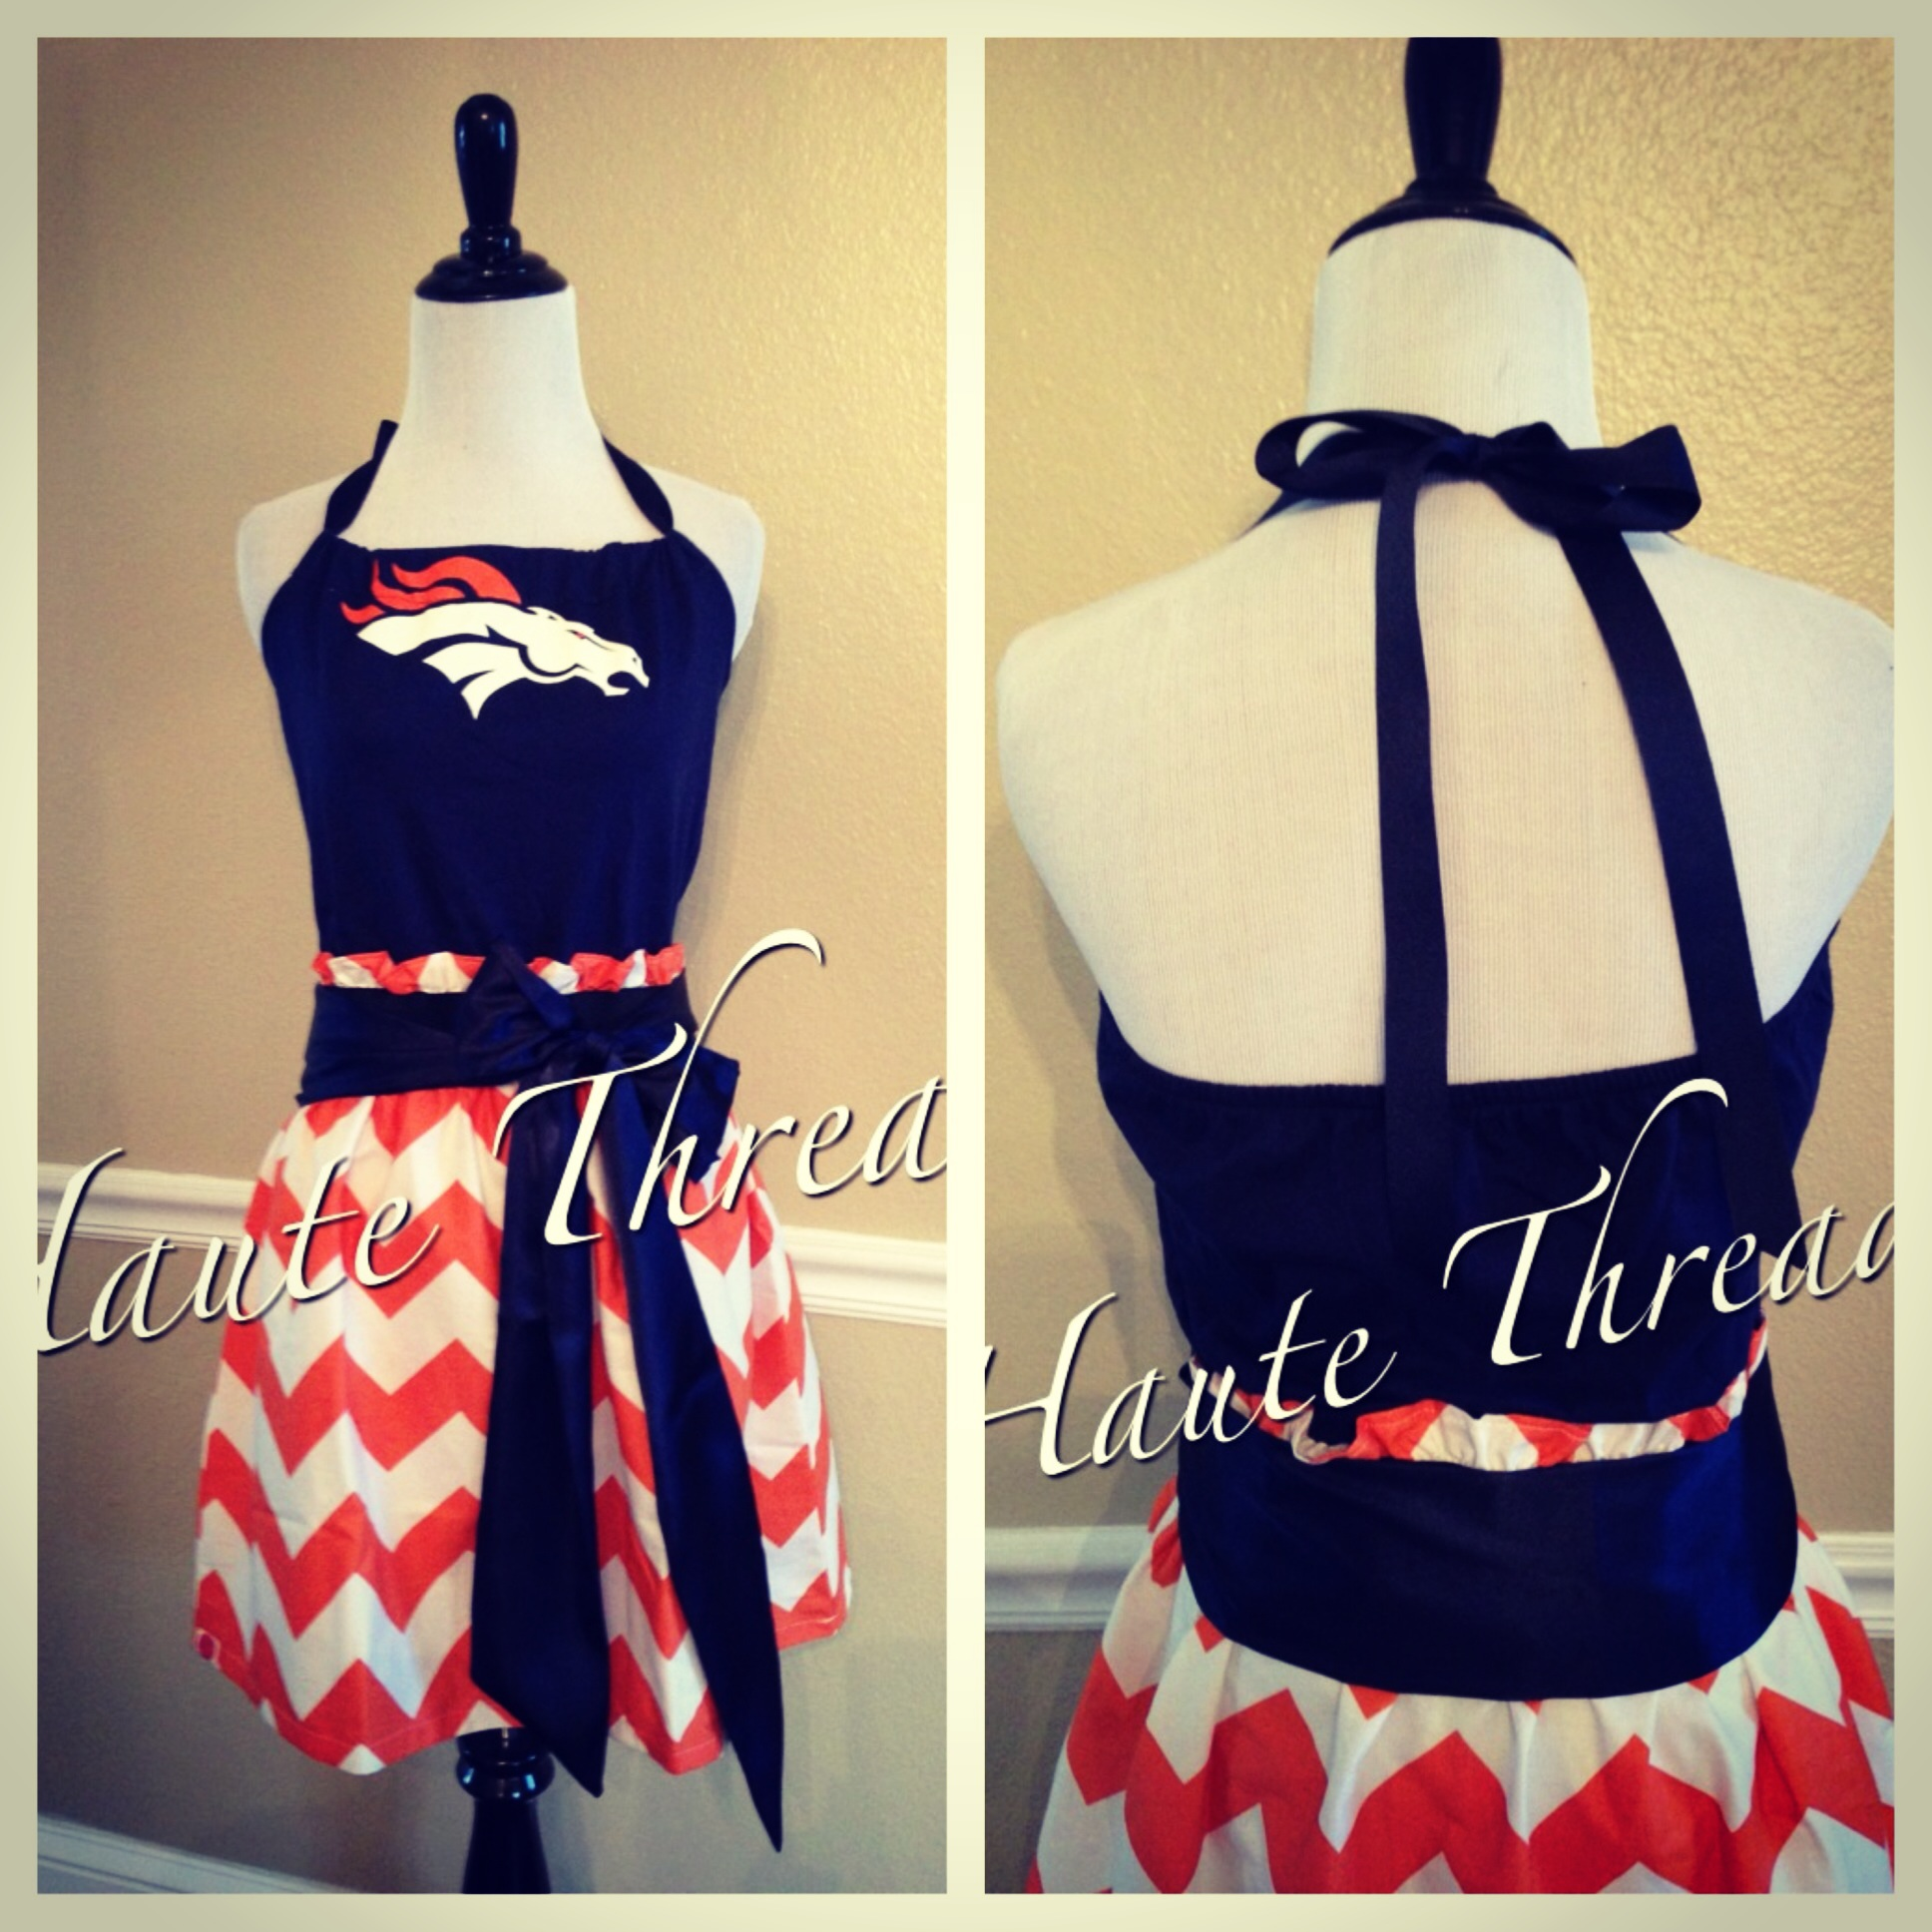 Denver-Broncos-game-day-dress-made-from-your-favorite-tee-or-tank-www-hautethreadsboutique-com-wallpaper-wp5006718